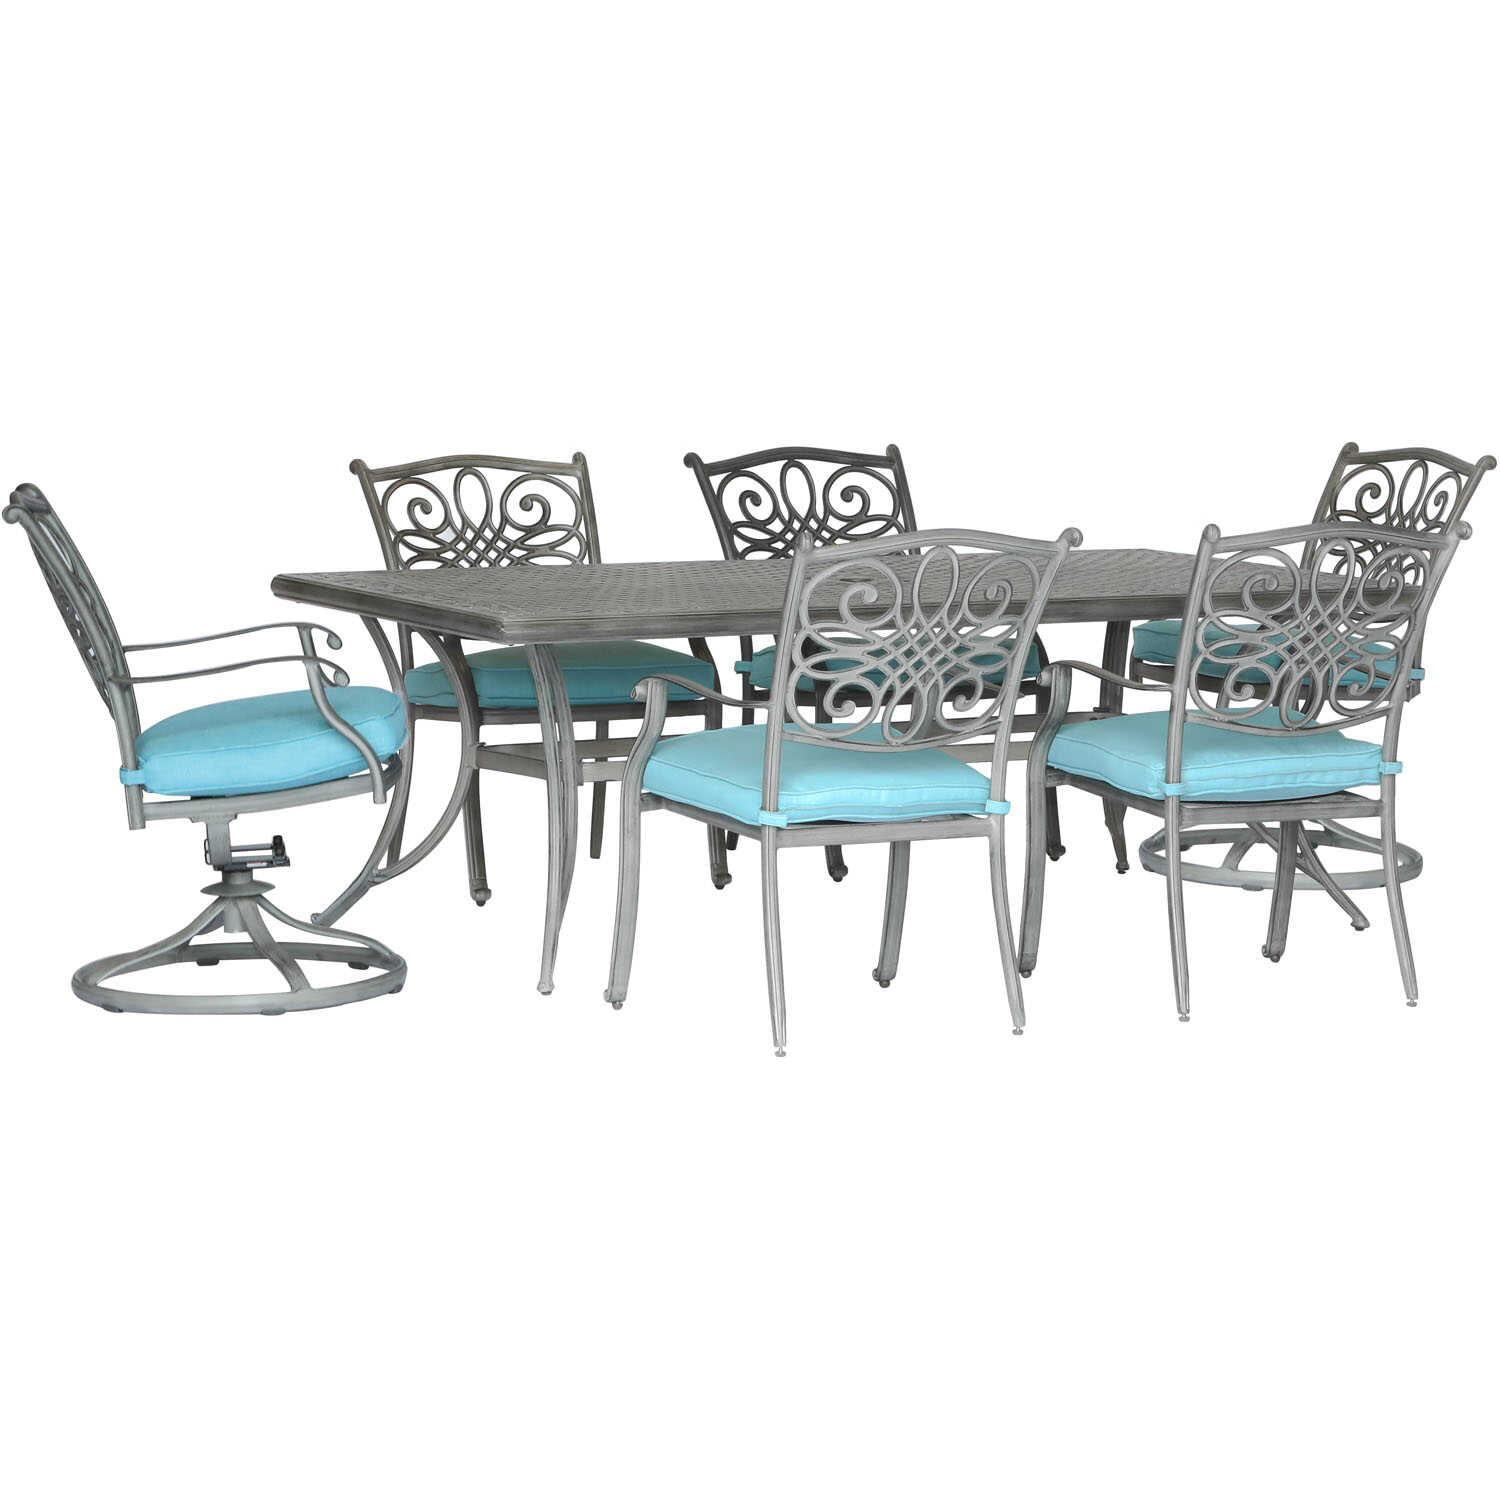 Hanover  Traditions  7 pc. Bronze  Aluminum  Patio Set  Blue